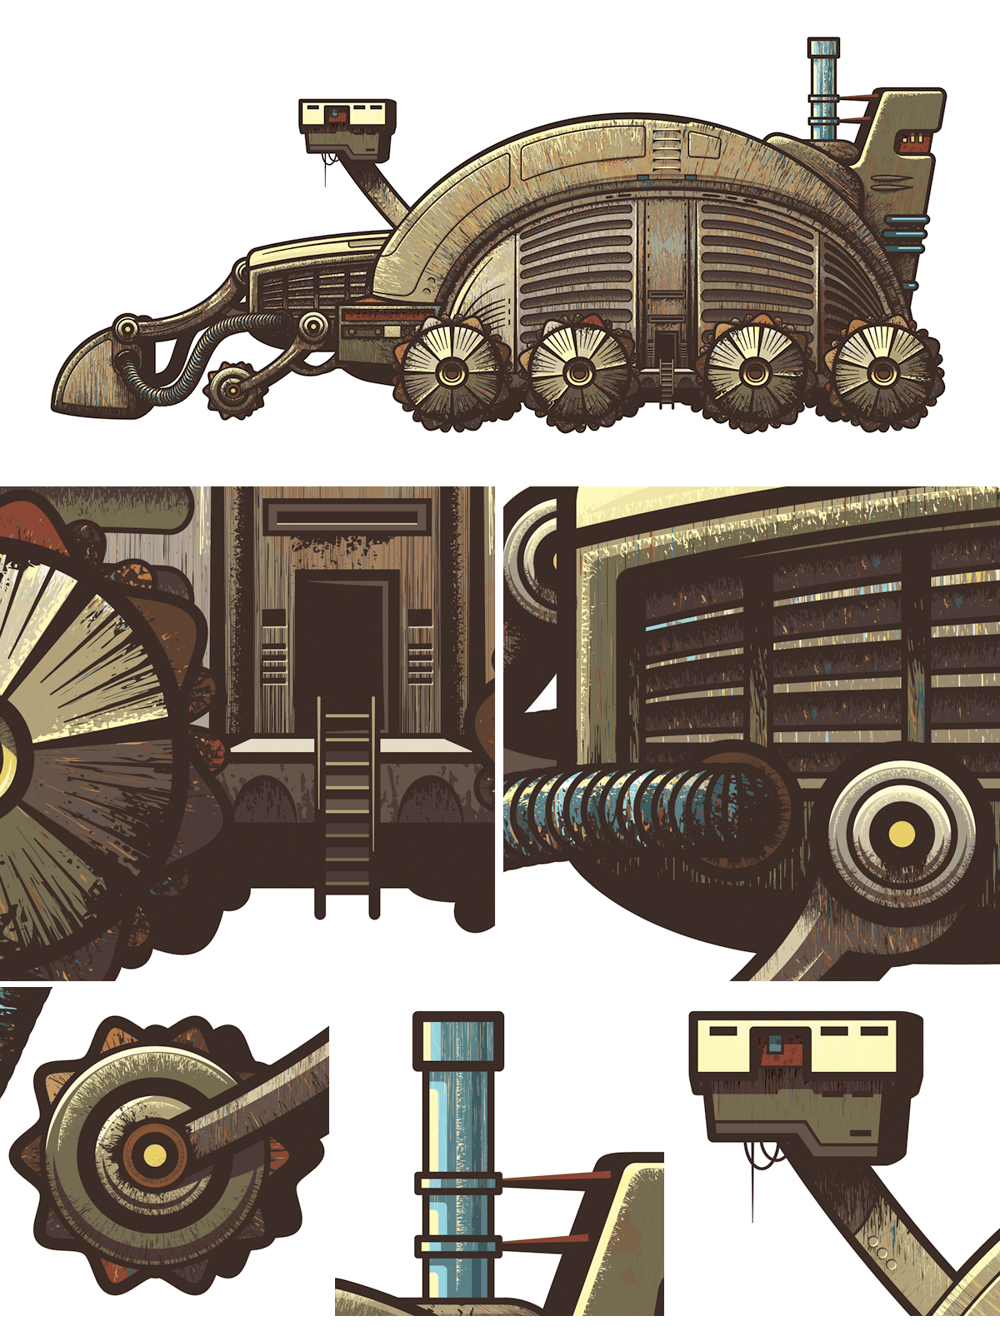 Dune Spice Harvester - image 5 - student project